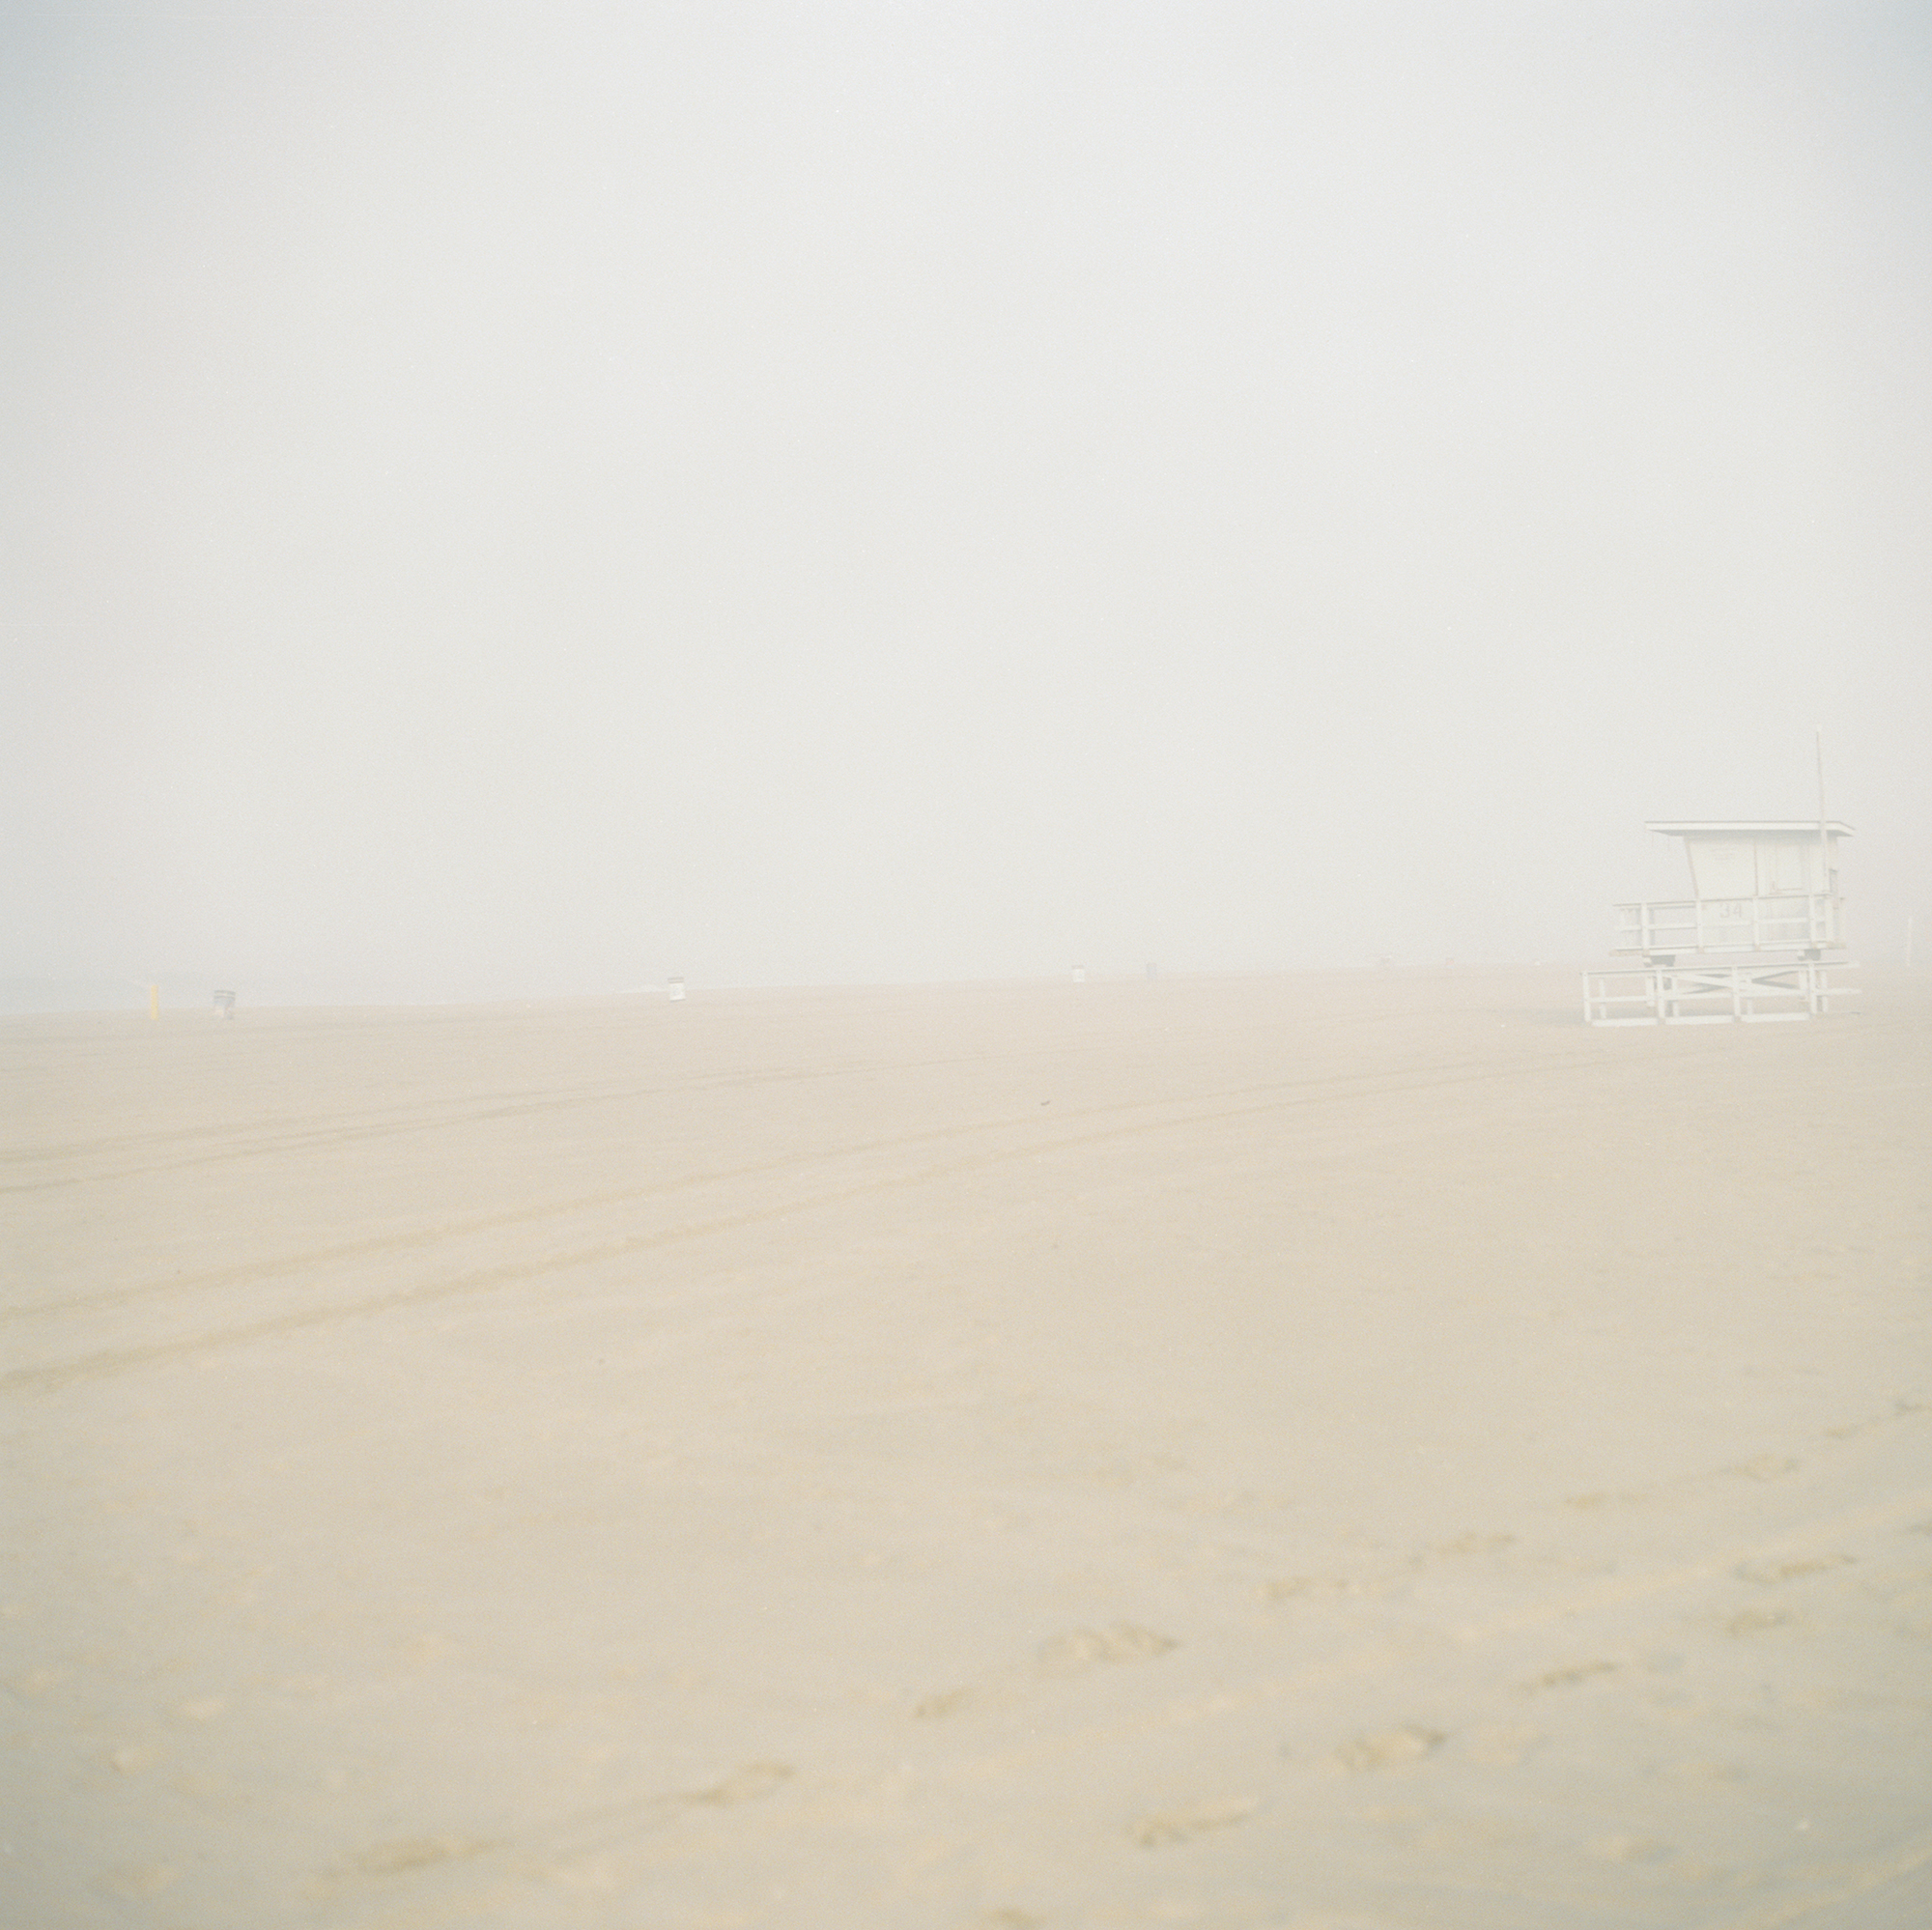 Where Capt.Bob Hyde Disappeared on Manhattan Beach (2008)